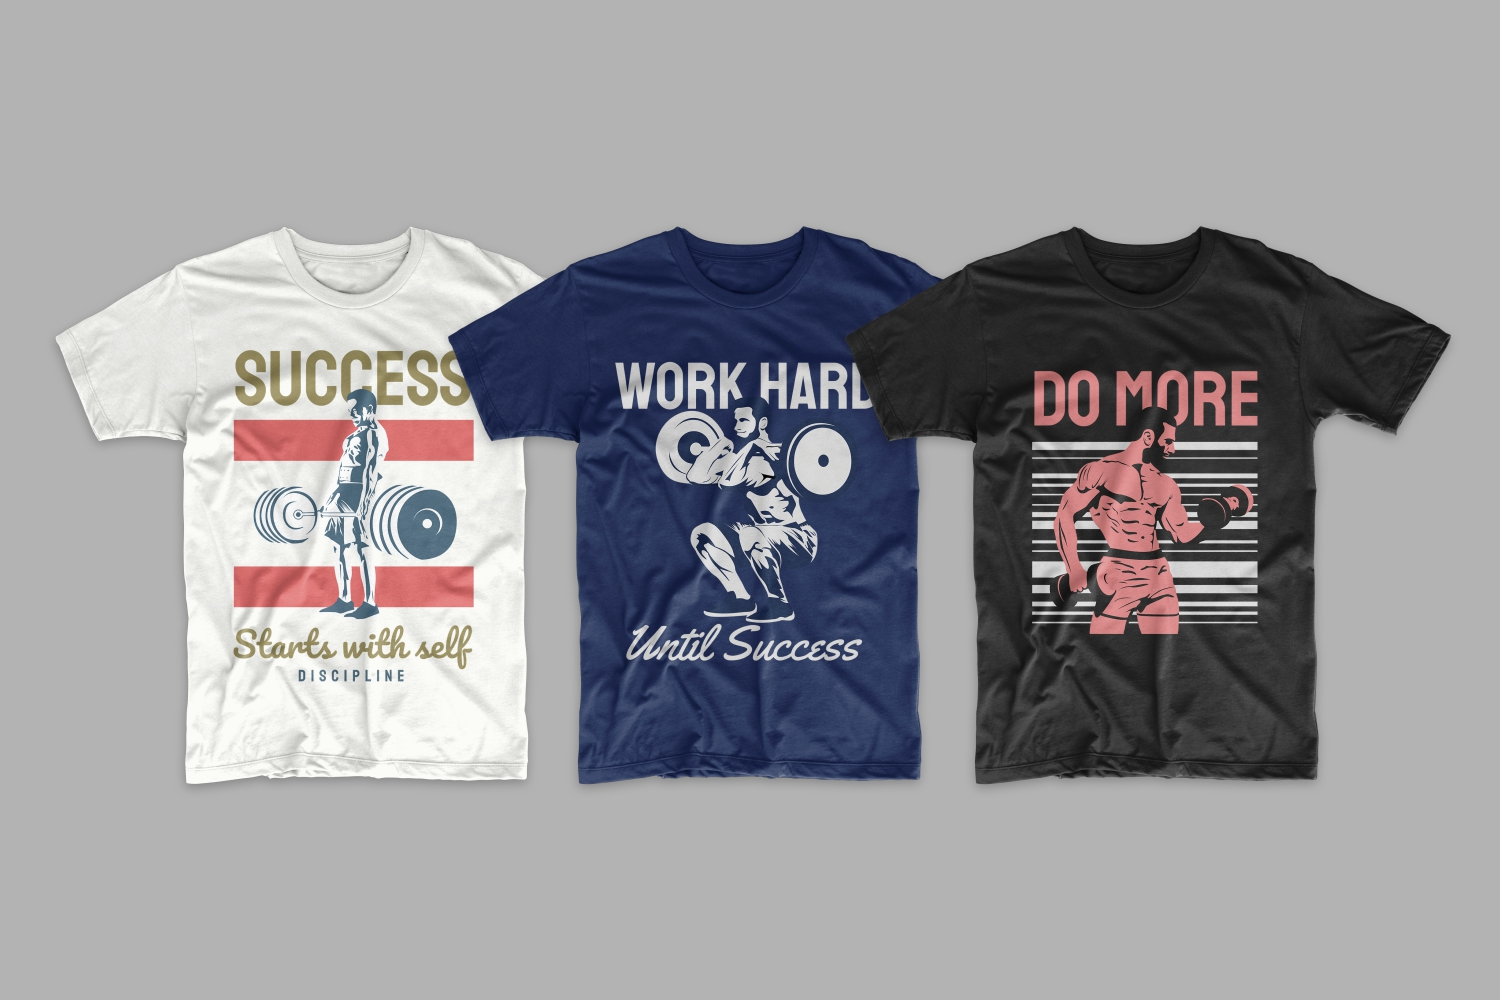 Three T-shirts: blue, white and black featuring a sports man with a barbell.